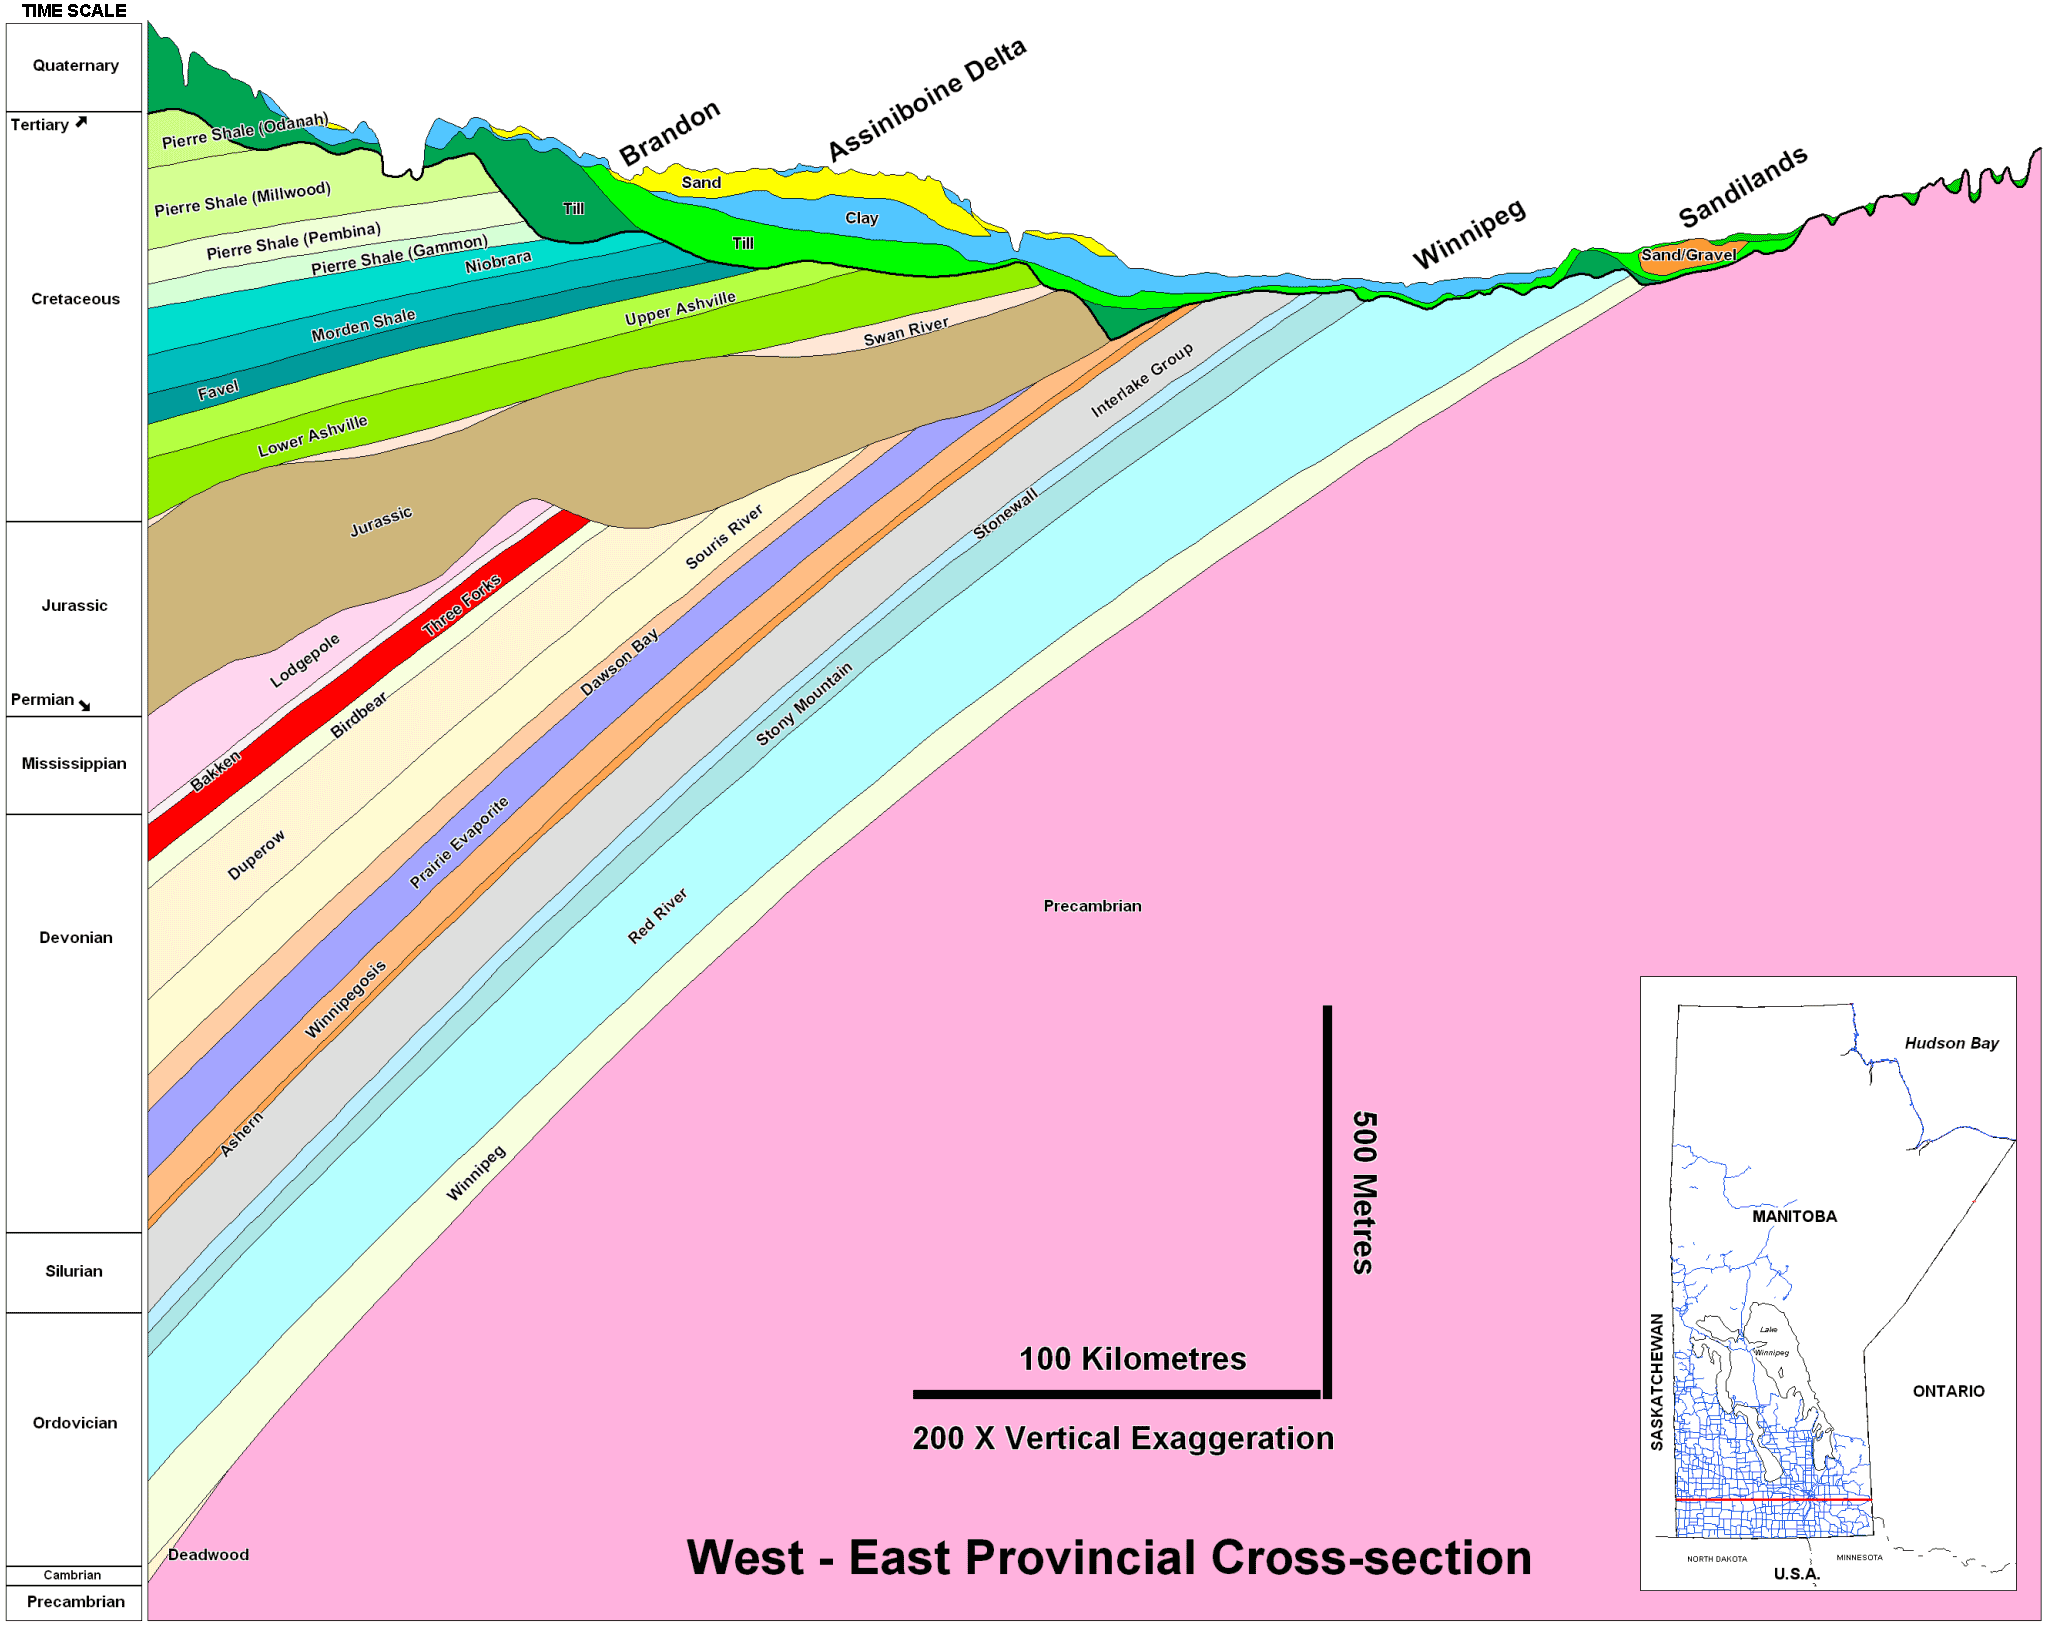 A west to east geological cross-section through southern Manitoba shows how the older strata are located below younger ones (vertical scale greatly exaggerated).